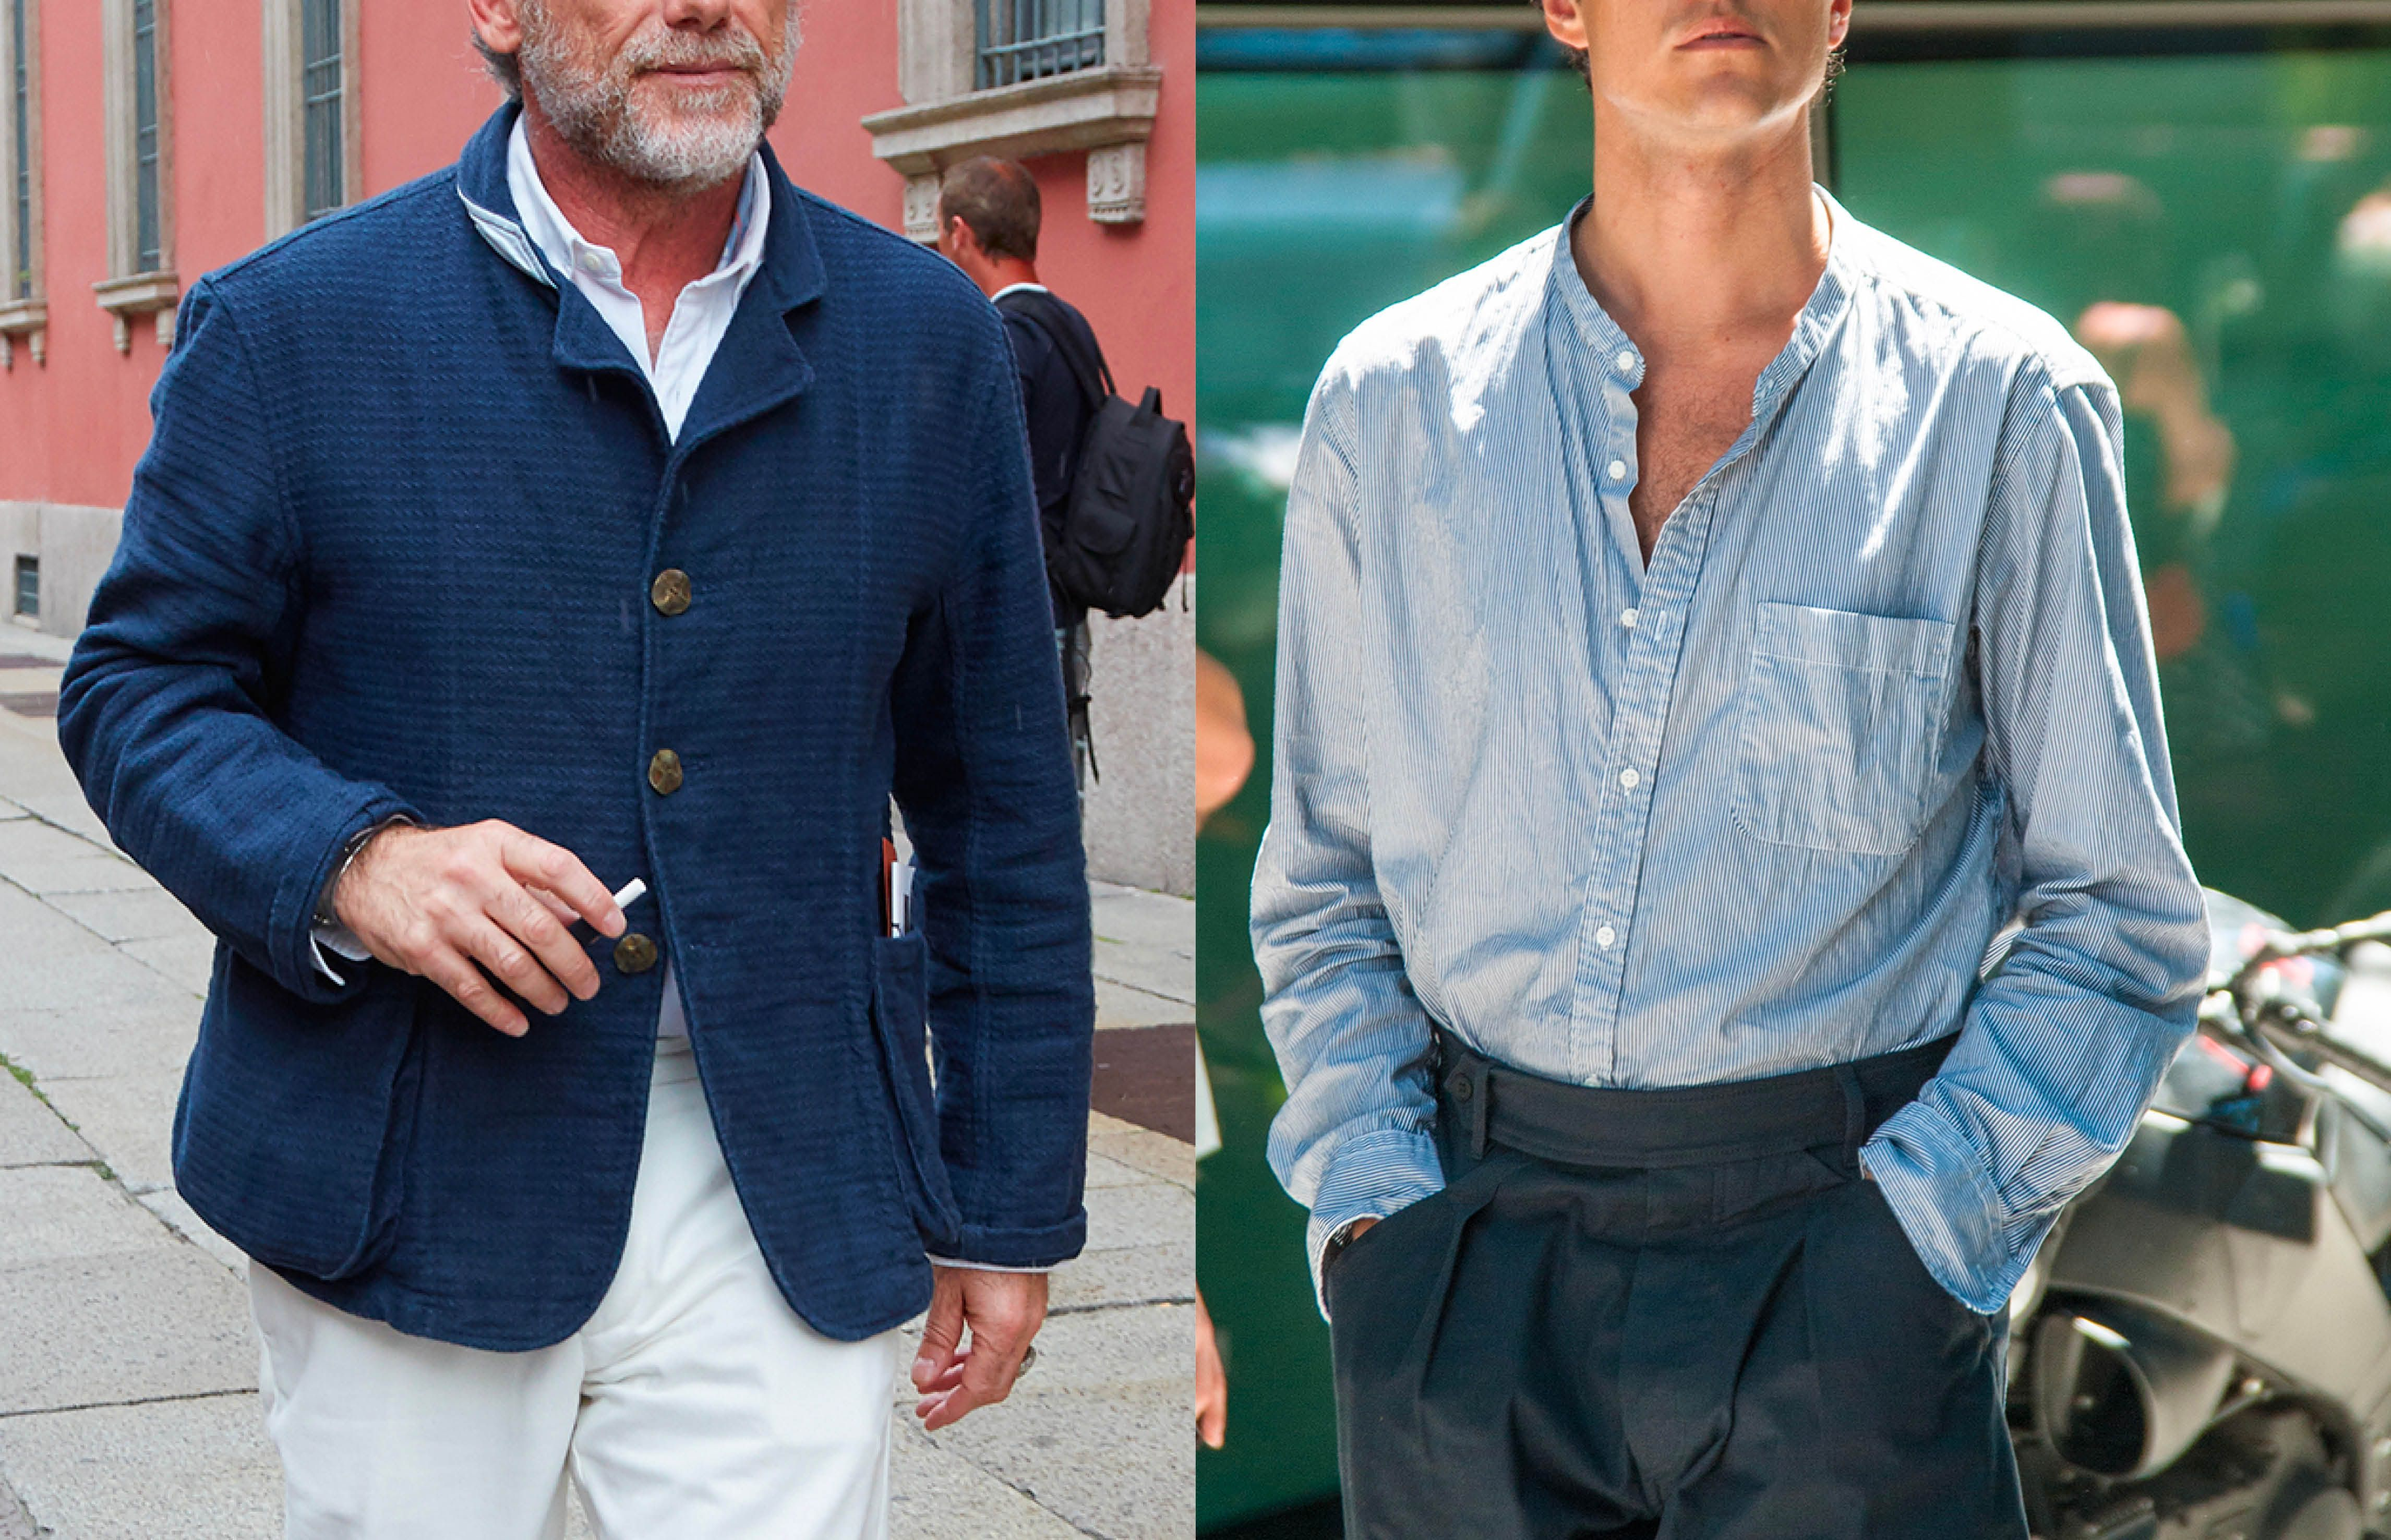 Your guide to Italian style